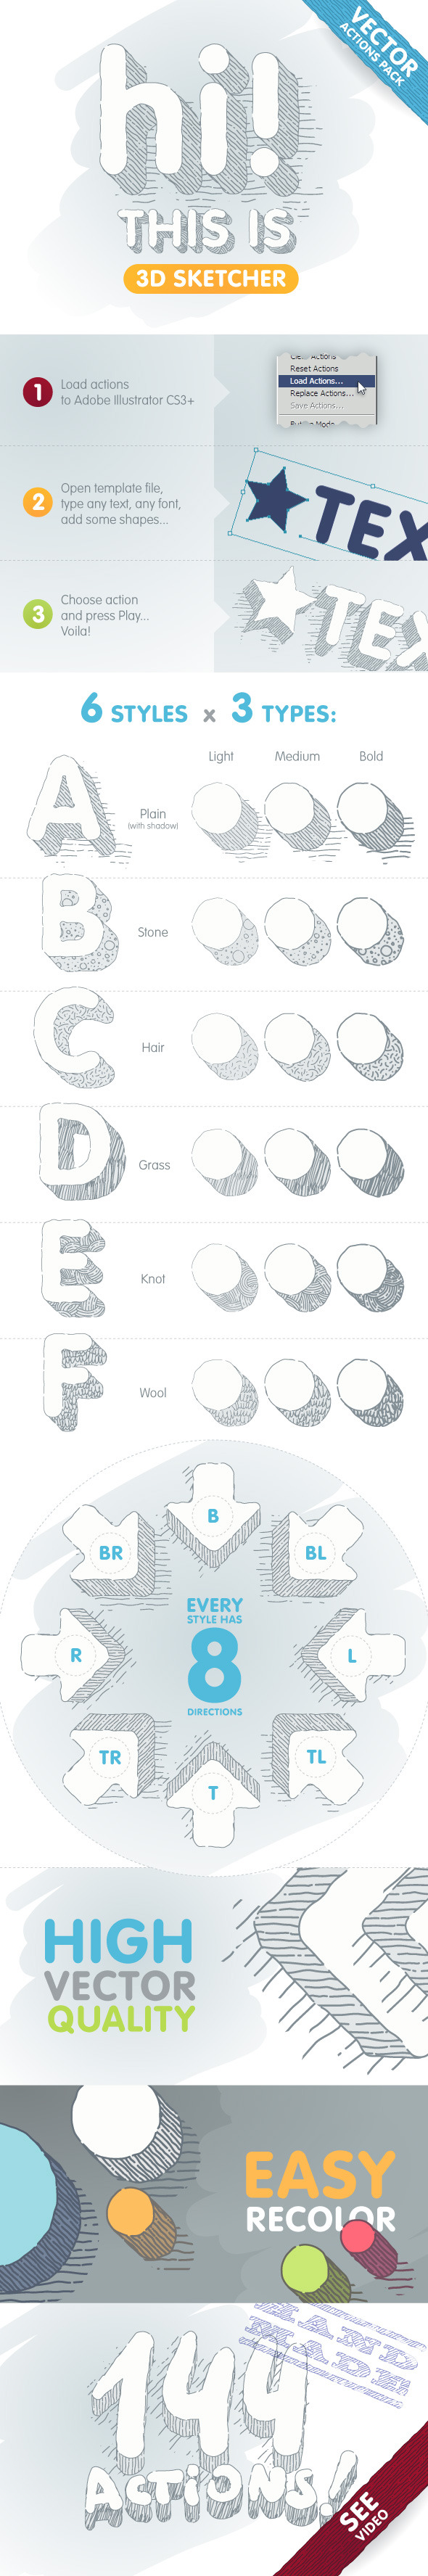 3D Sketcher - Vector Actions Pack